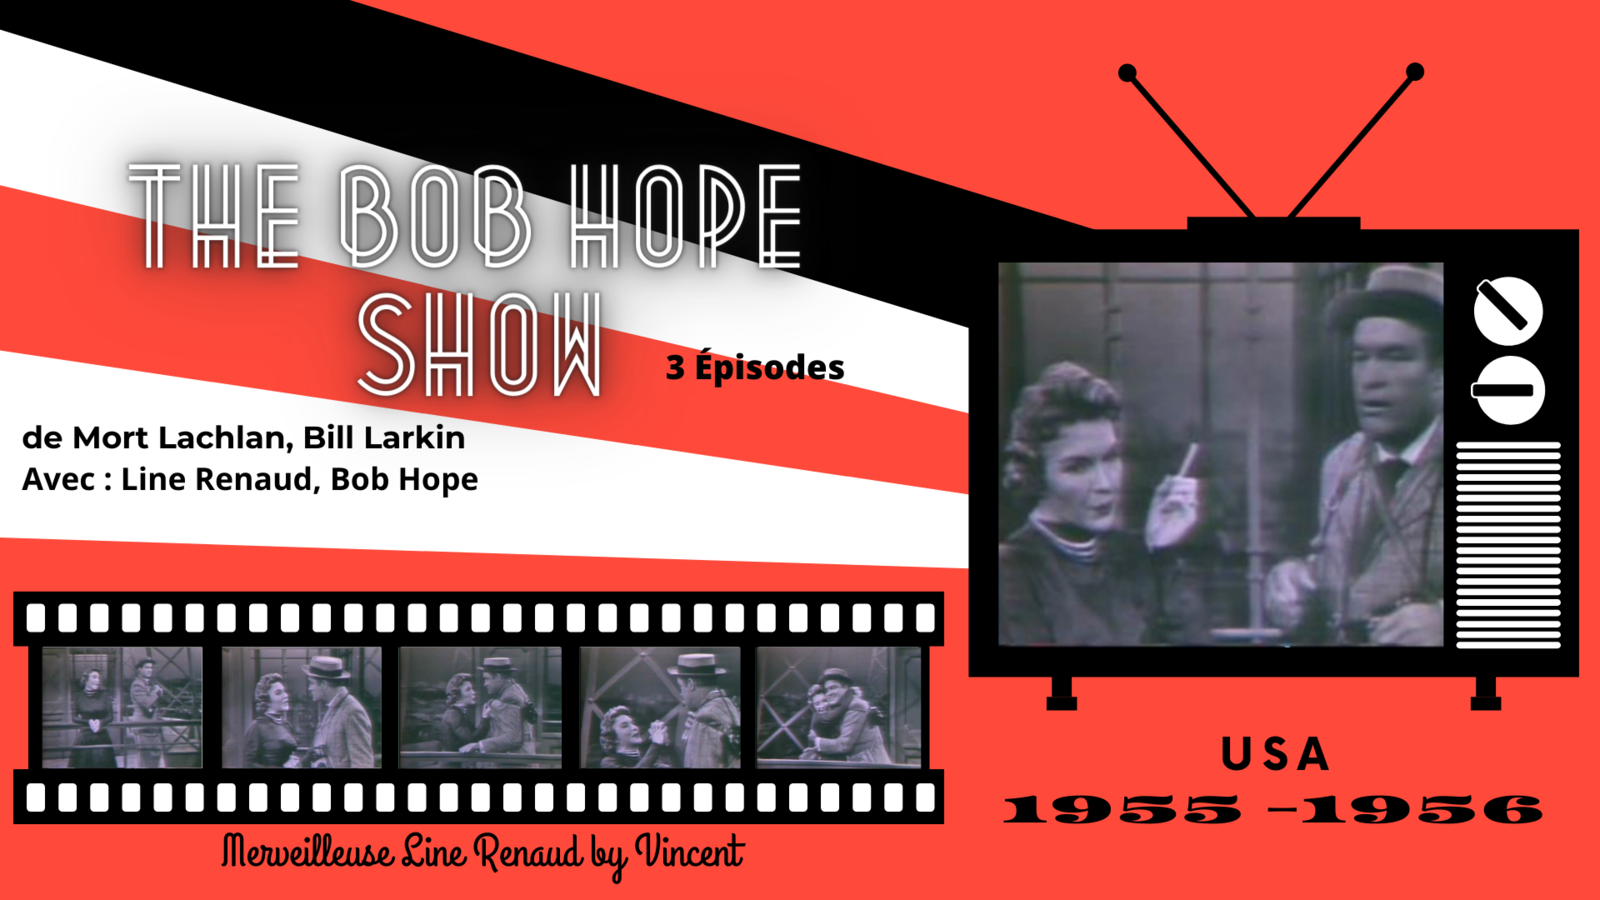 1955 - 1956 « The Bob Hope Show » de Mort Lachlan & Bill Larkin (USA)